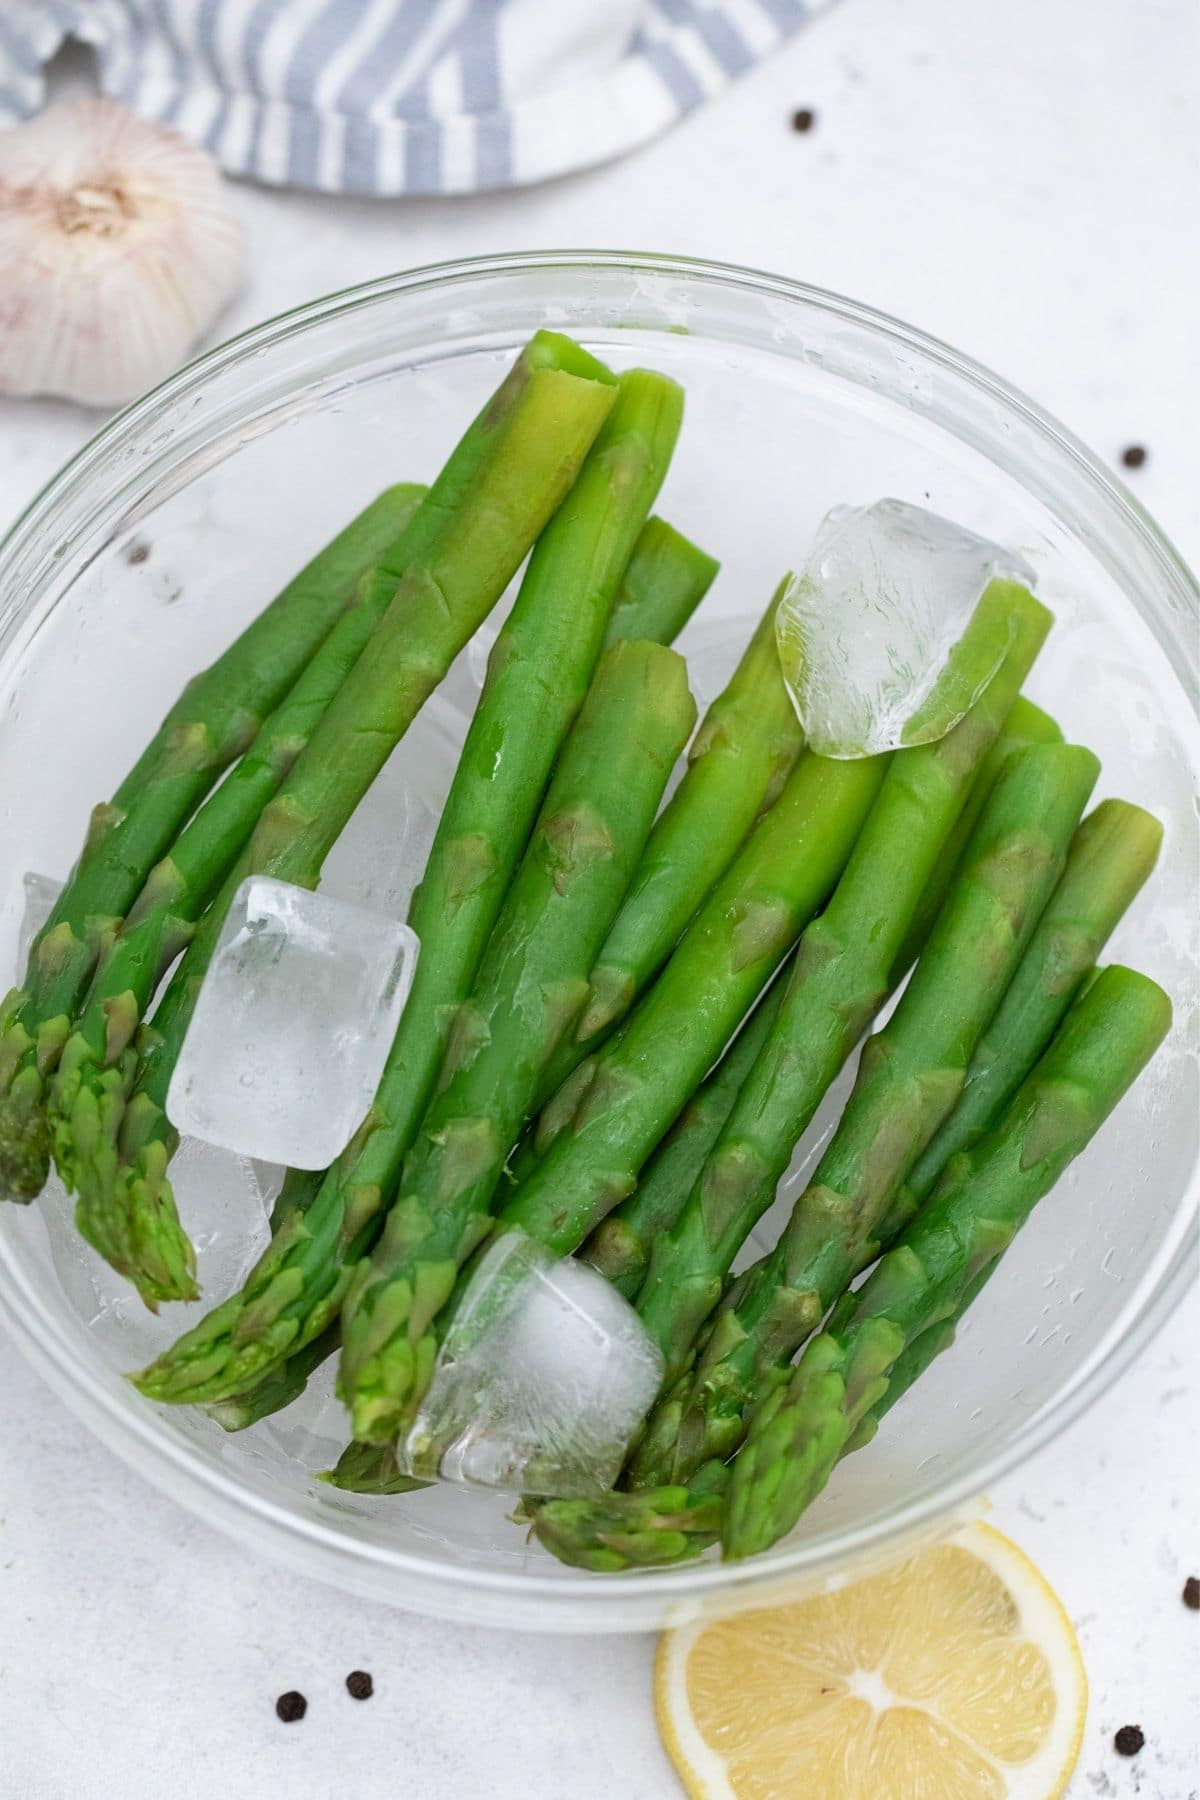 Asparagus spears on ice in glass bowl